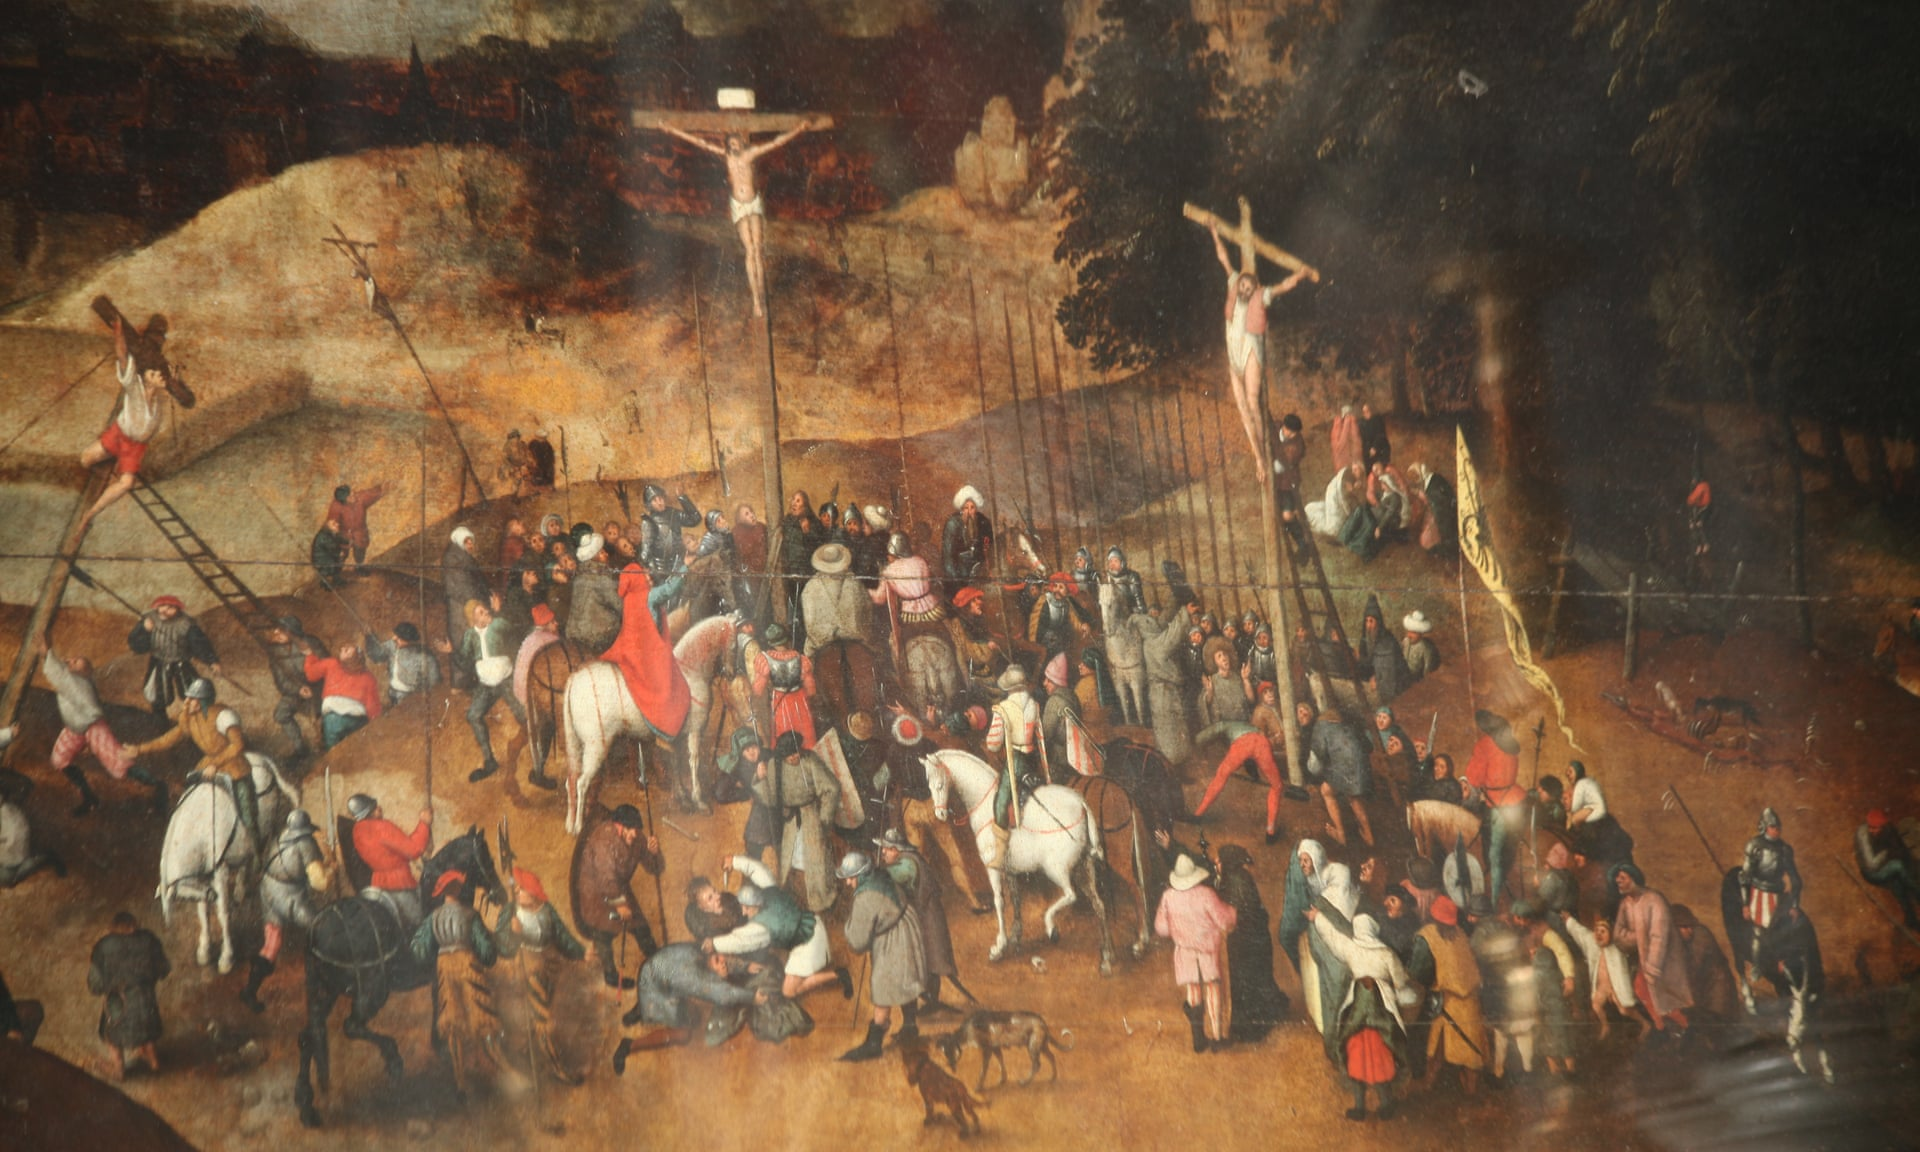 The Crucifixion by Pieter Brueghel the Younger.